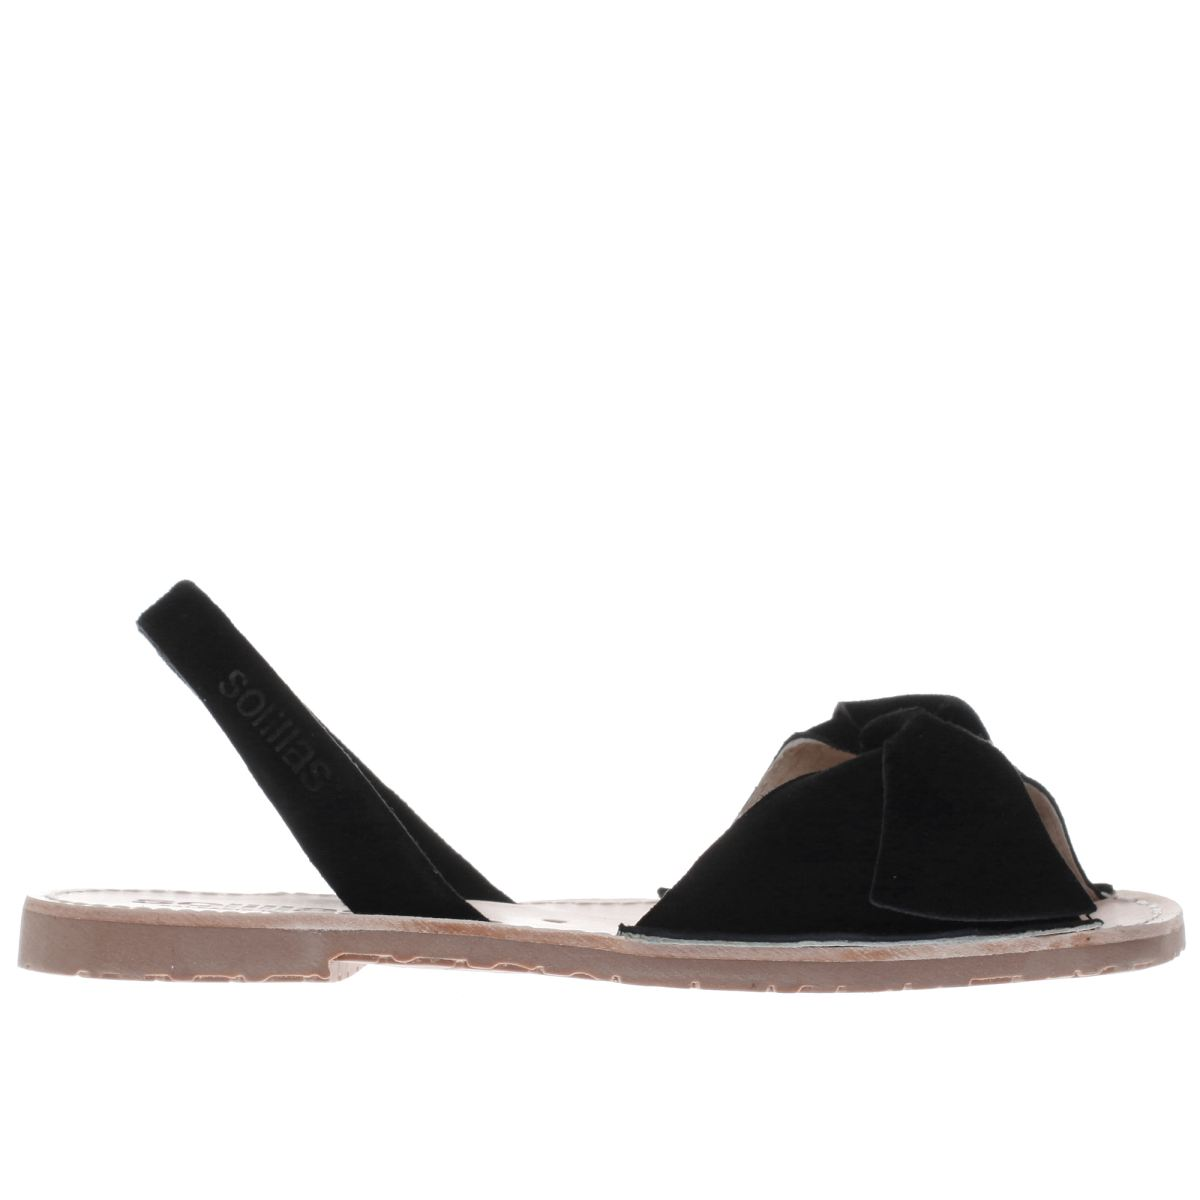 solillas black bow sandals